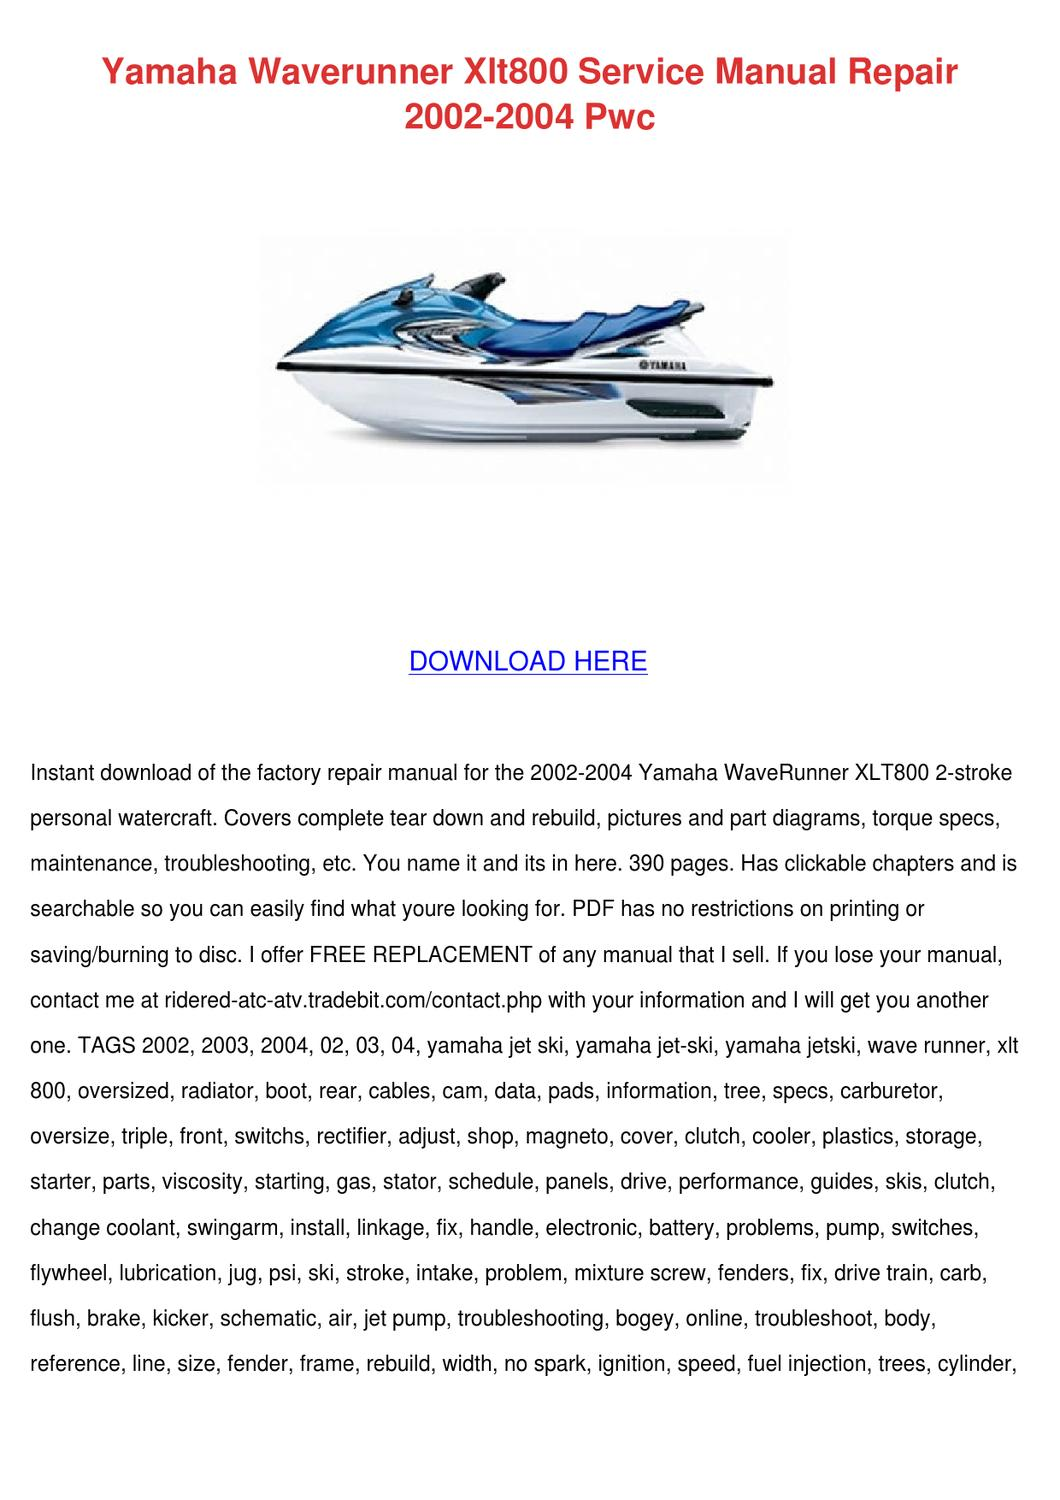 Yamaha Waverunner Xlt800 Service Manual Repai By Phoebe Constantine Issuu